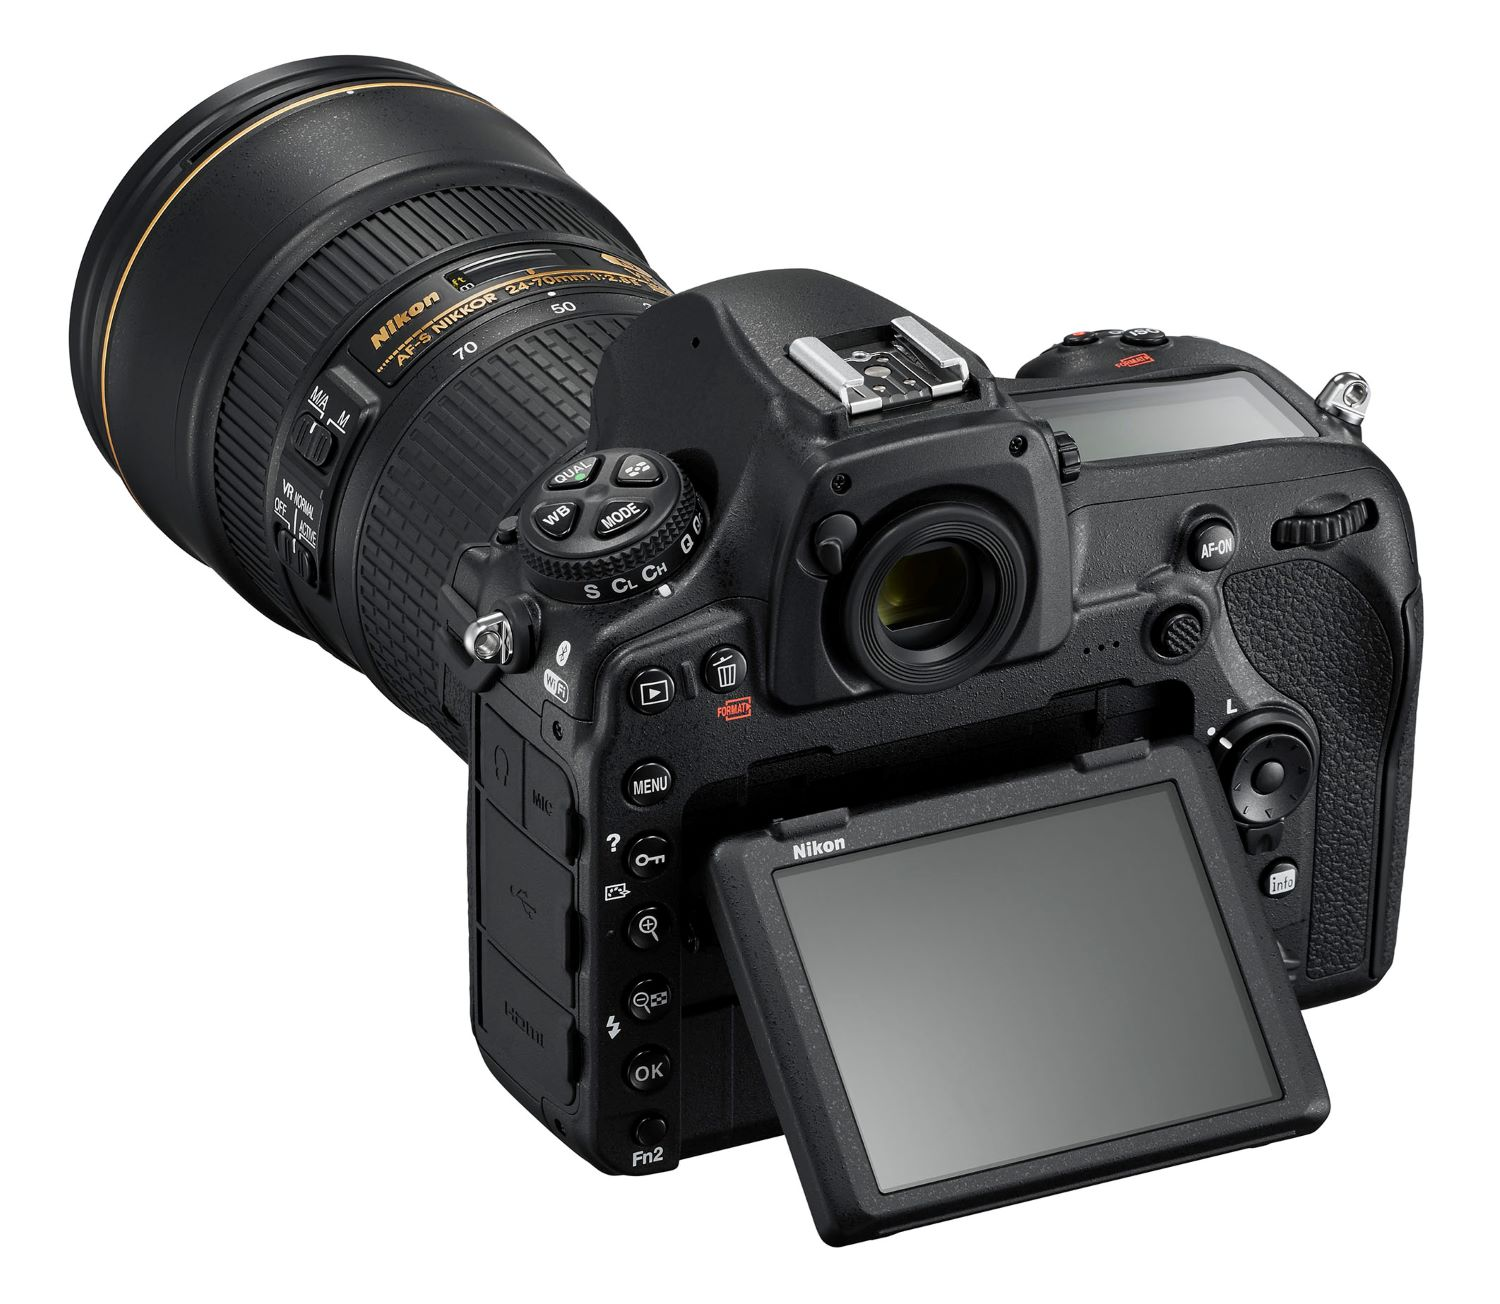 https://i1.wp.com/digital-photography-school.com/wp-content/uploads/2020/02/use-a-dslr-in-2020-14.jpg?ssl=1